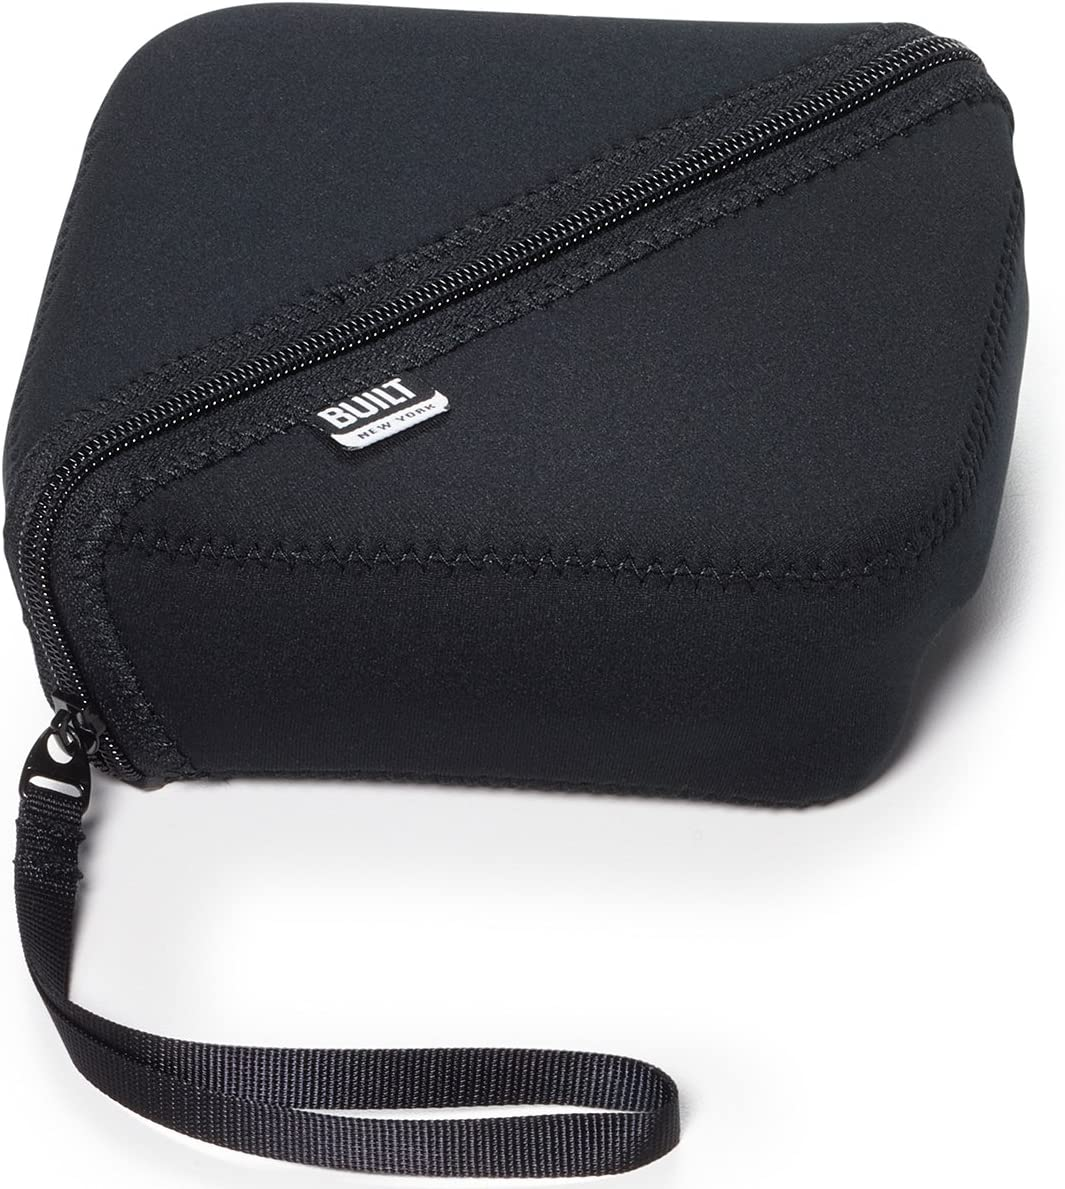 BUILT NY Bento Sandwich Container with Neoprene Sleeve, Black